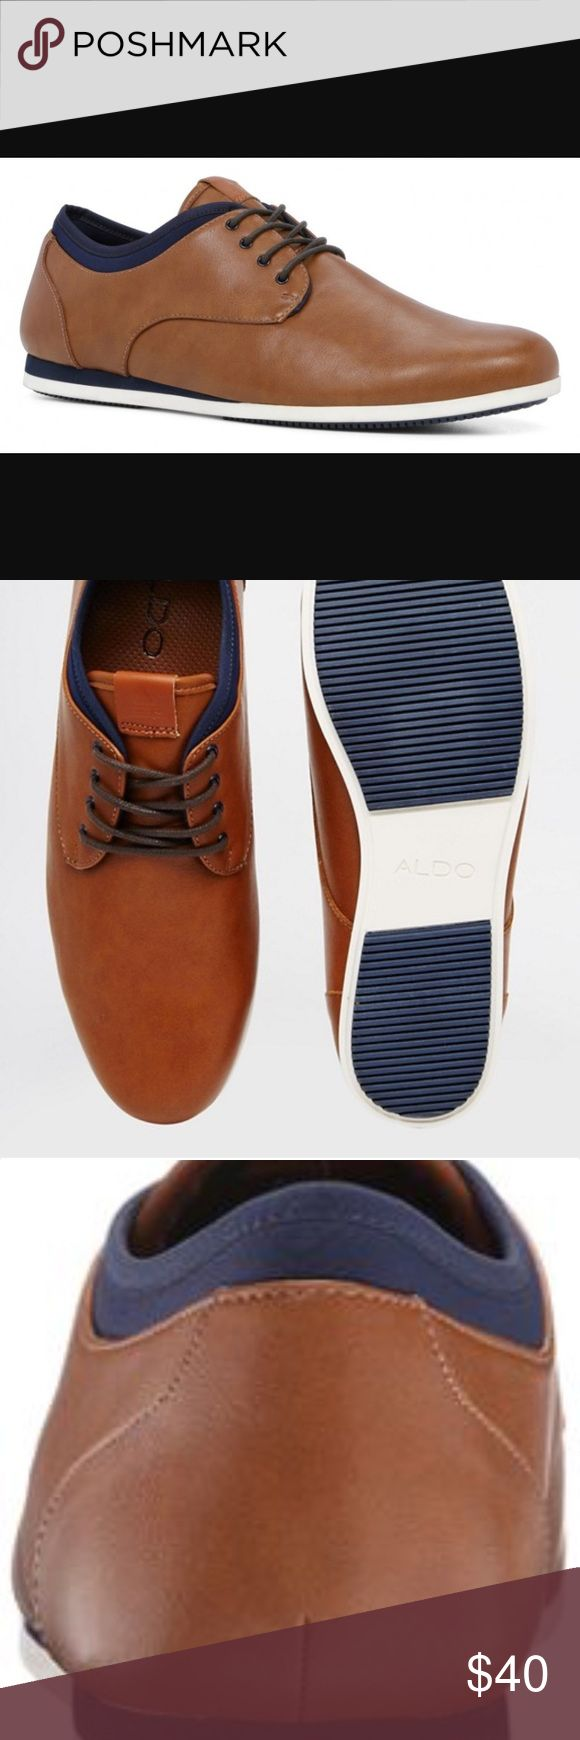 ALDO Erme-28 Aldo Men's Aauwen-r Oxford Product Details Color: Cognac / Navy / White Size: 8. US Aldo Shoes Oxfords & Derbys